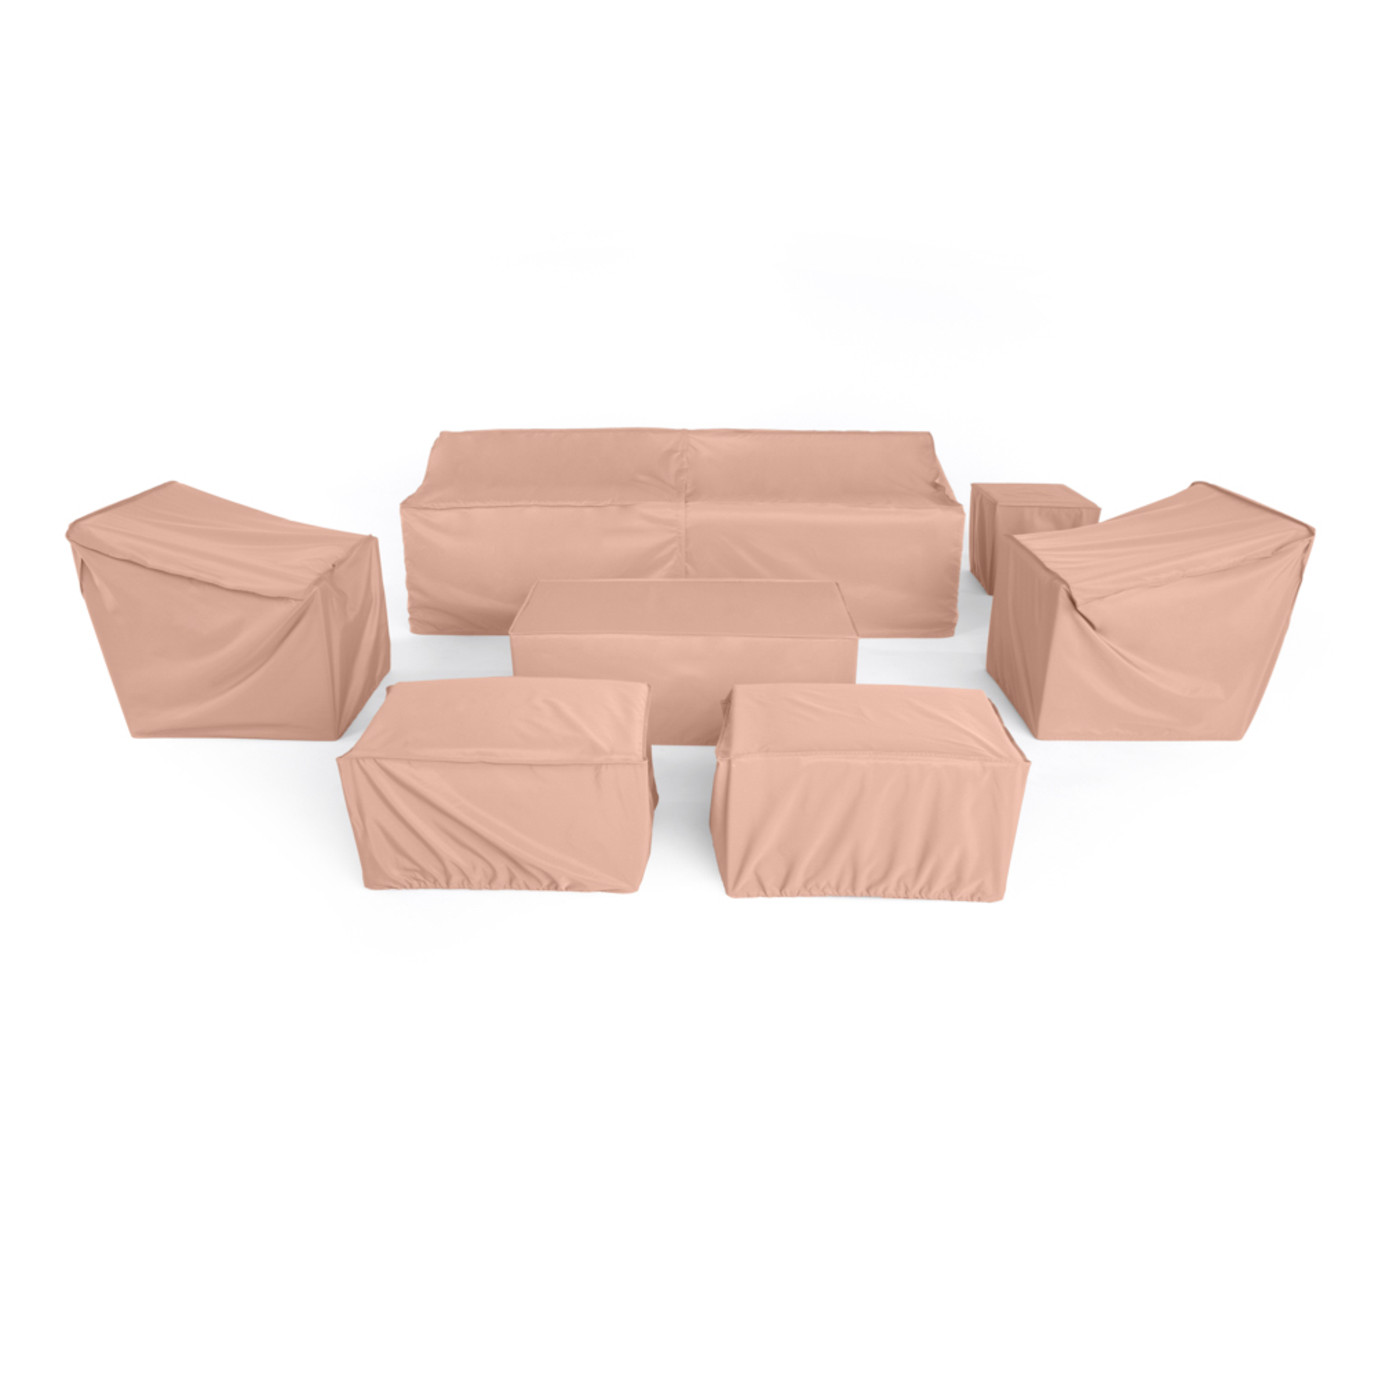 Legacy Furniture Covers - Modular 8pc Seating Set